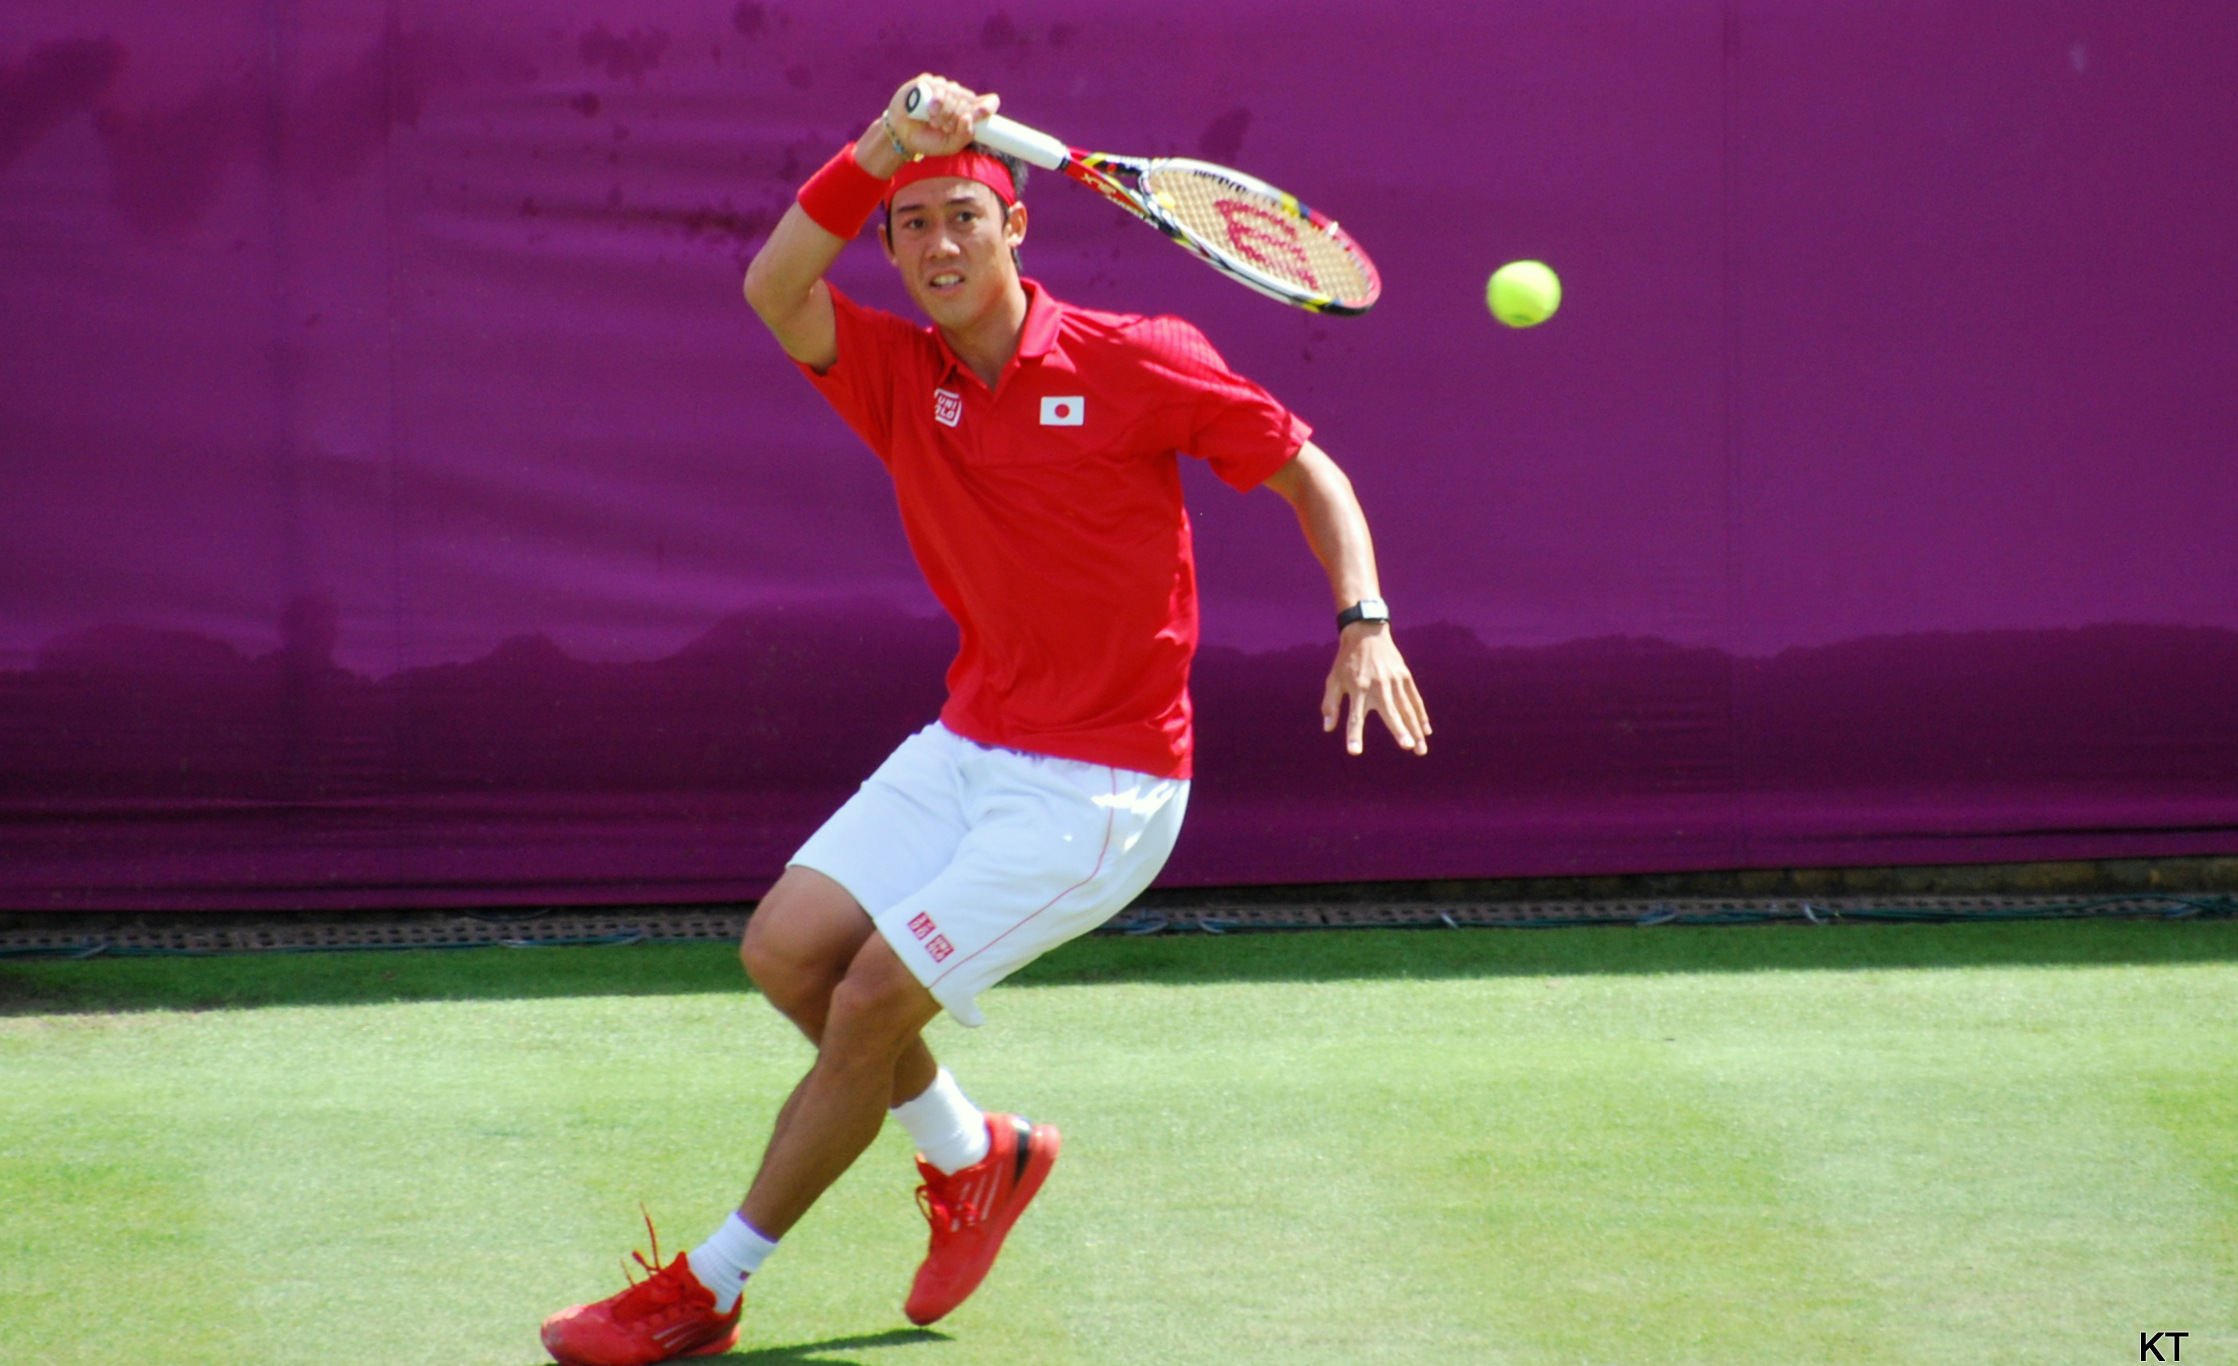 Kei_Nishikori_at_the_2012_Summer_Olympics